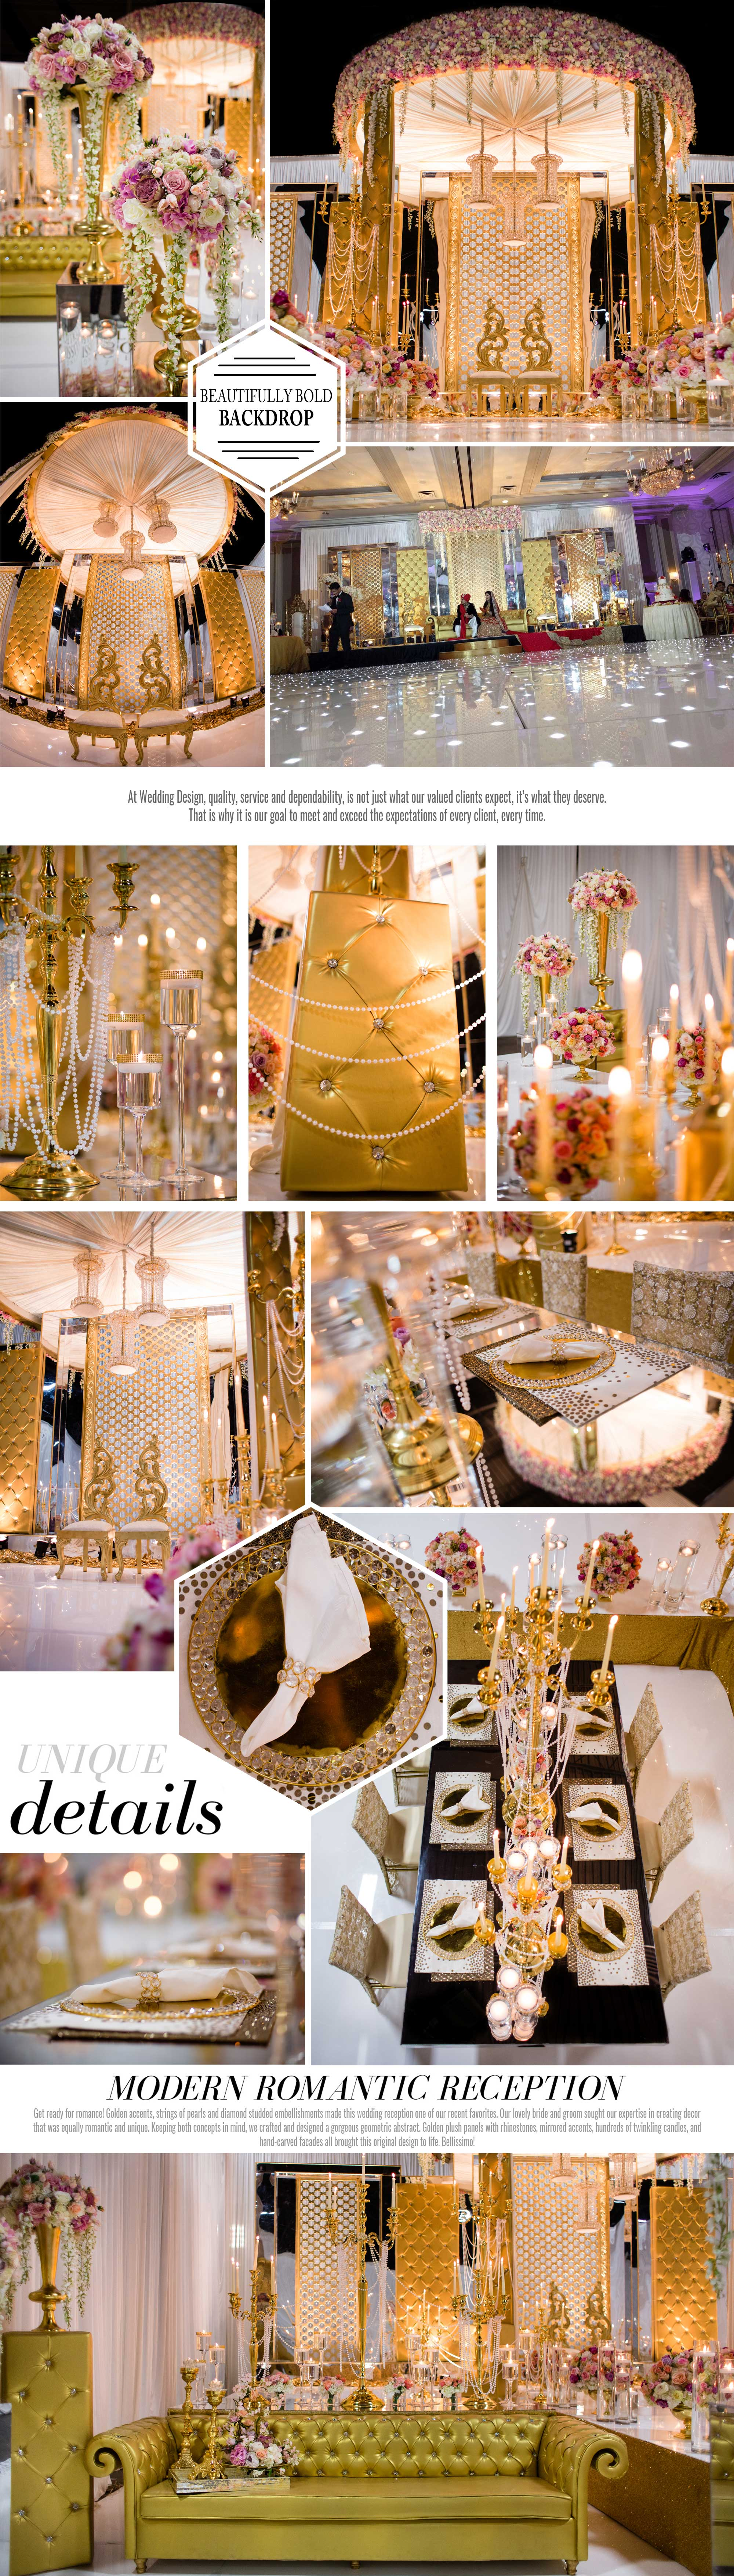 Bellissimo, Beautifully Bold Backdrop, At Wedding Design, quality, service and dependability, is not just what our valued clients expect, it's what they deserve. That is why it is our goal to meet and exceed the expectations of every client, every time. Unique details, Modern Romantic Reception, Get ready for romance! Golden accents, strings of pearls and diamond studded embellishments made this wedding reception one of our recent favorites. Our lovely bride and groom sought our expertise in creating decor that was equally romantic and unique. Keeping both concepts in mind, we crafted and designed a gorgeous geometric abstract. Golden plush panels with rhinestones, mirrored accents, hundreds of twinkling candles, and hand-carved facades all brought this original design to life. Bellissimo!